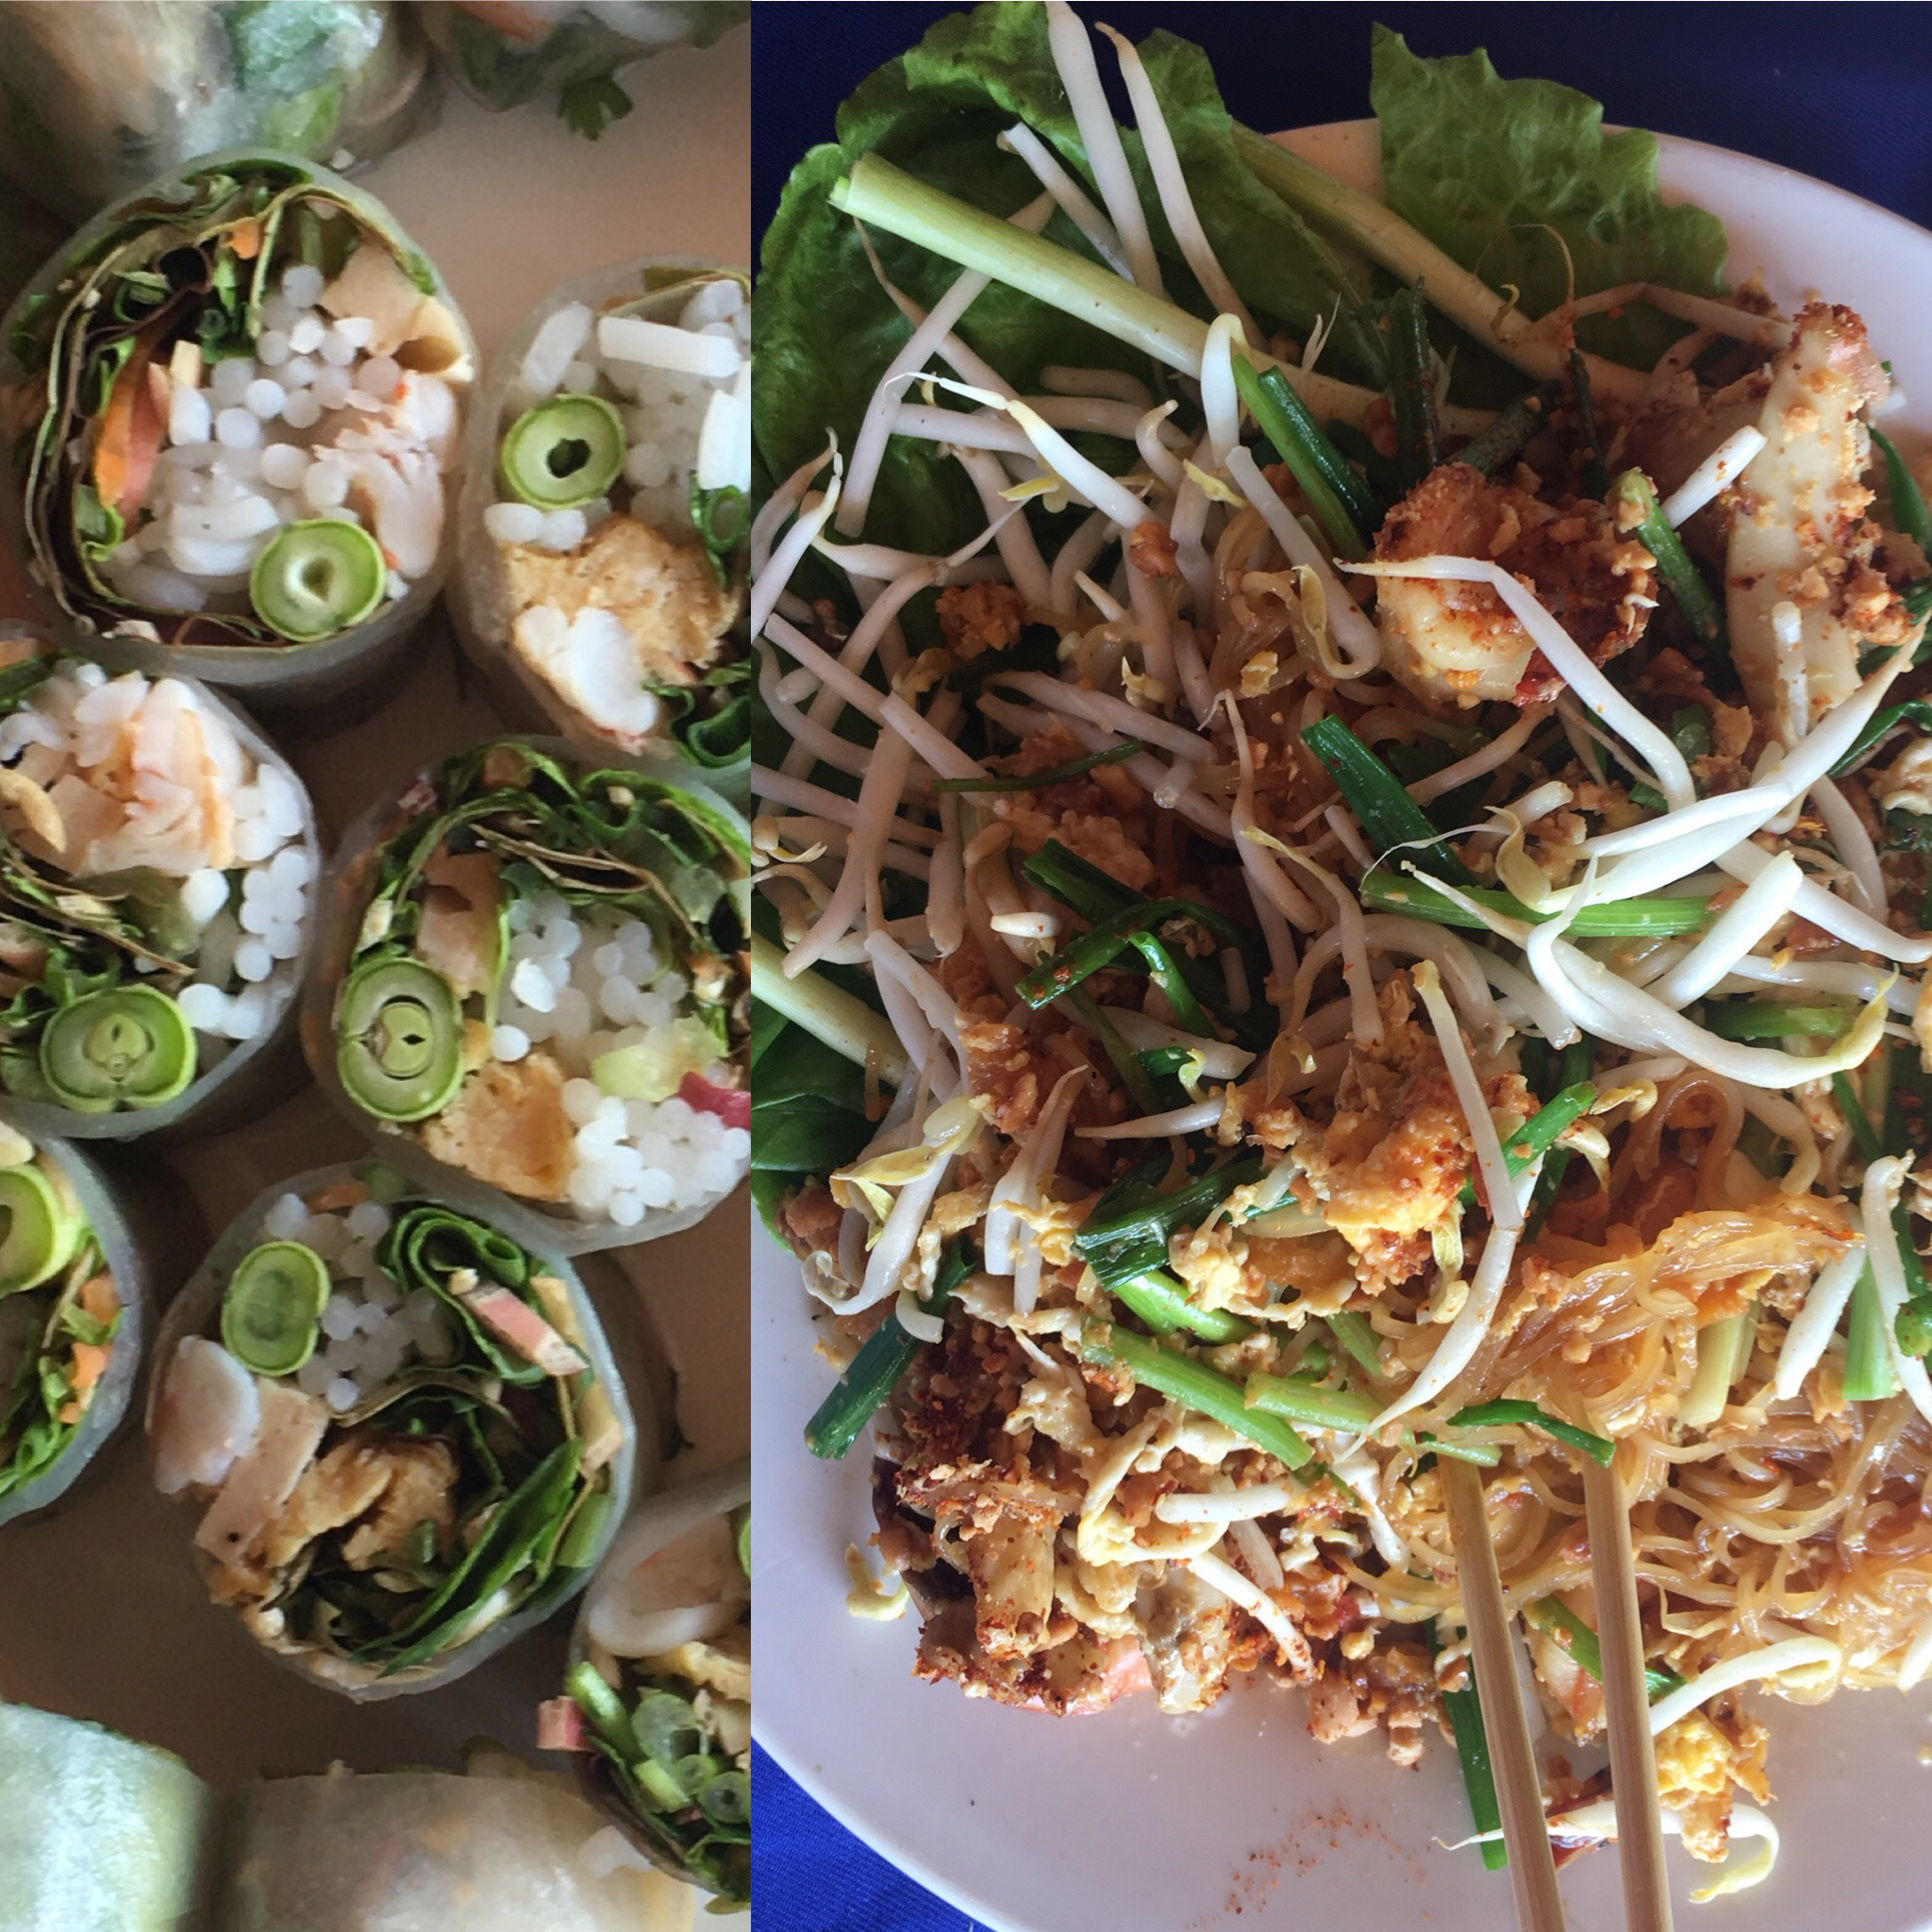 Delicious lunch of Fresh spring rolls and pad Thai